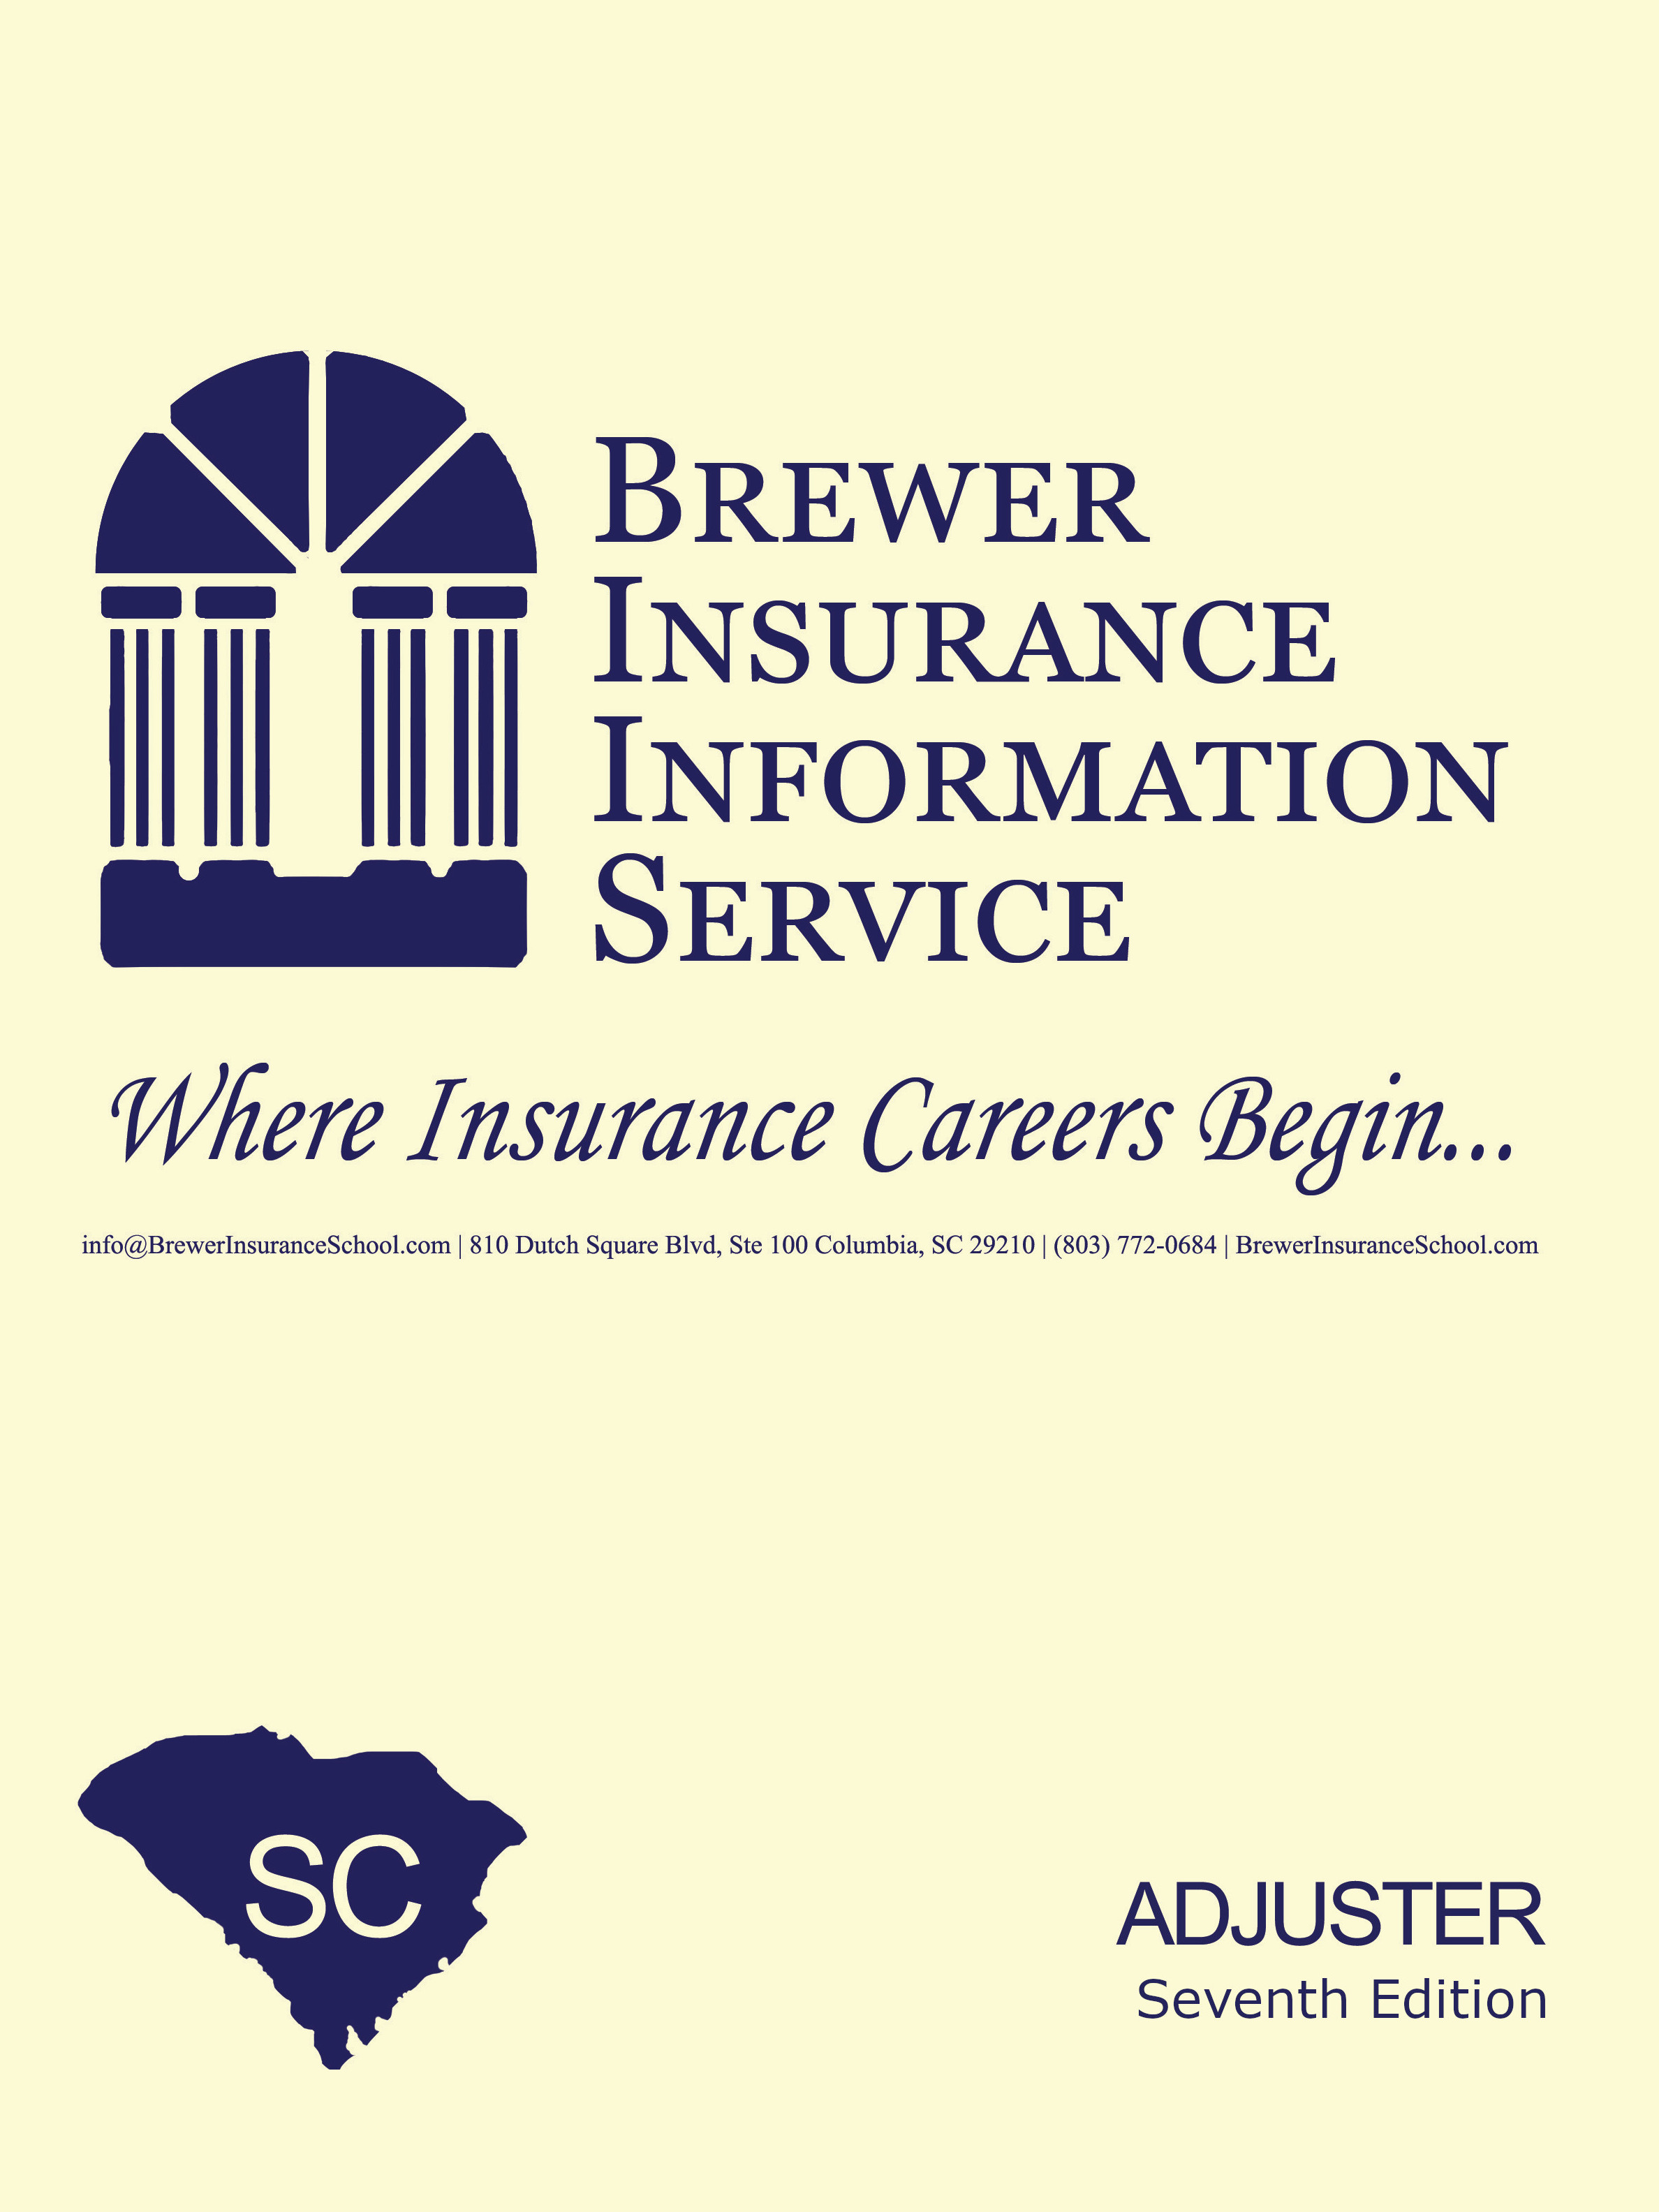 Claims Adjuster - Property, Casualty, Surety and Marine Claims Adjuster Pre-Licensing